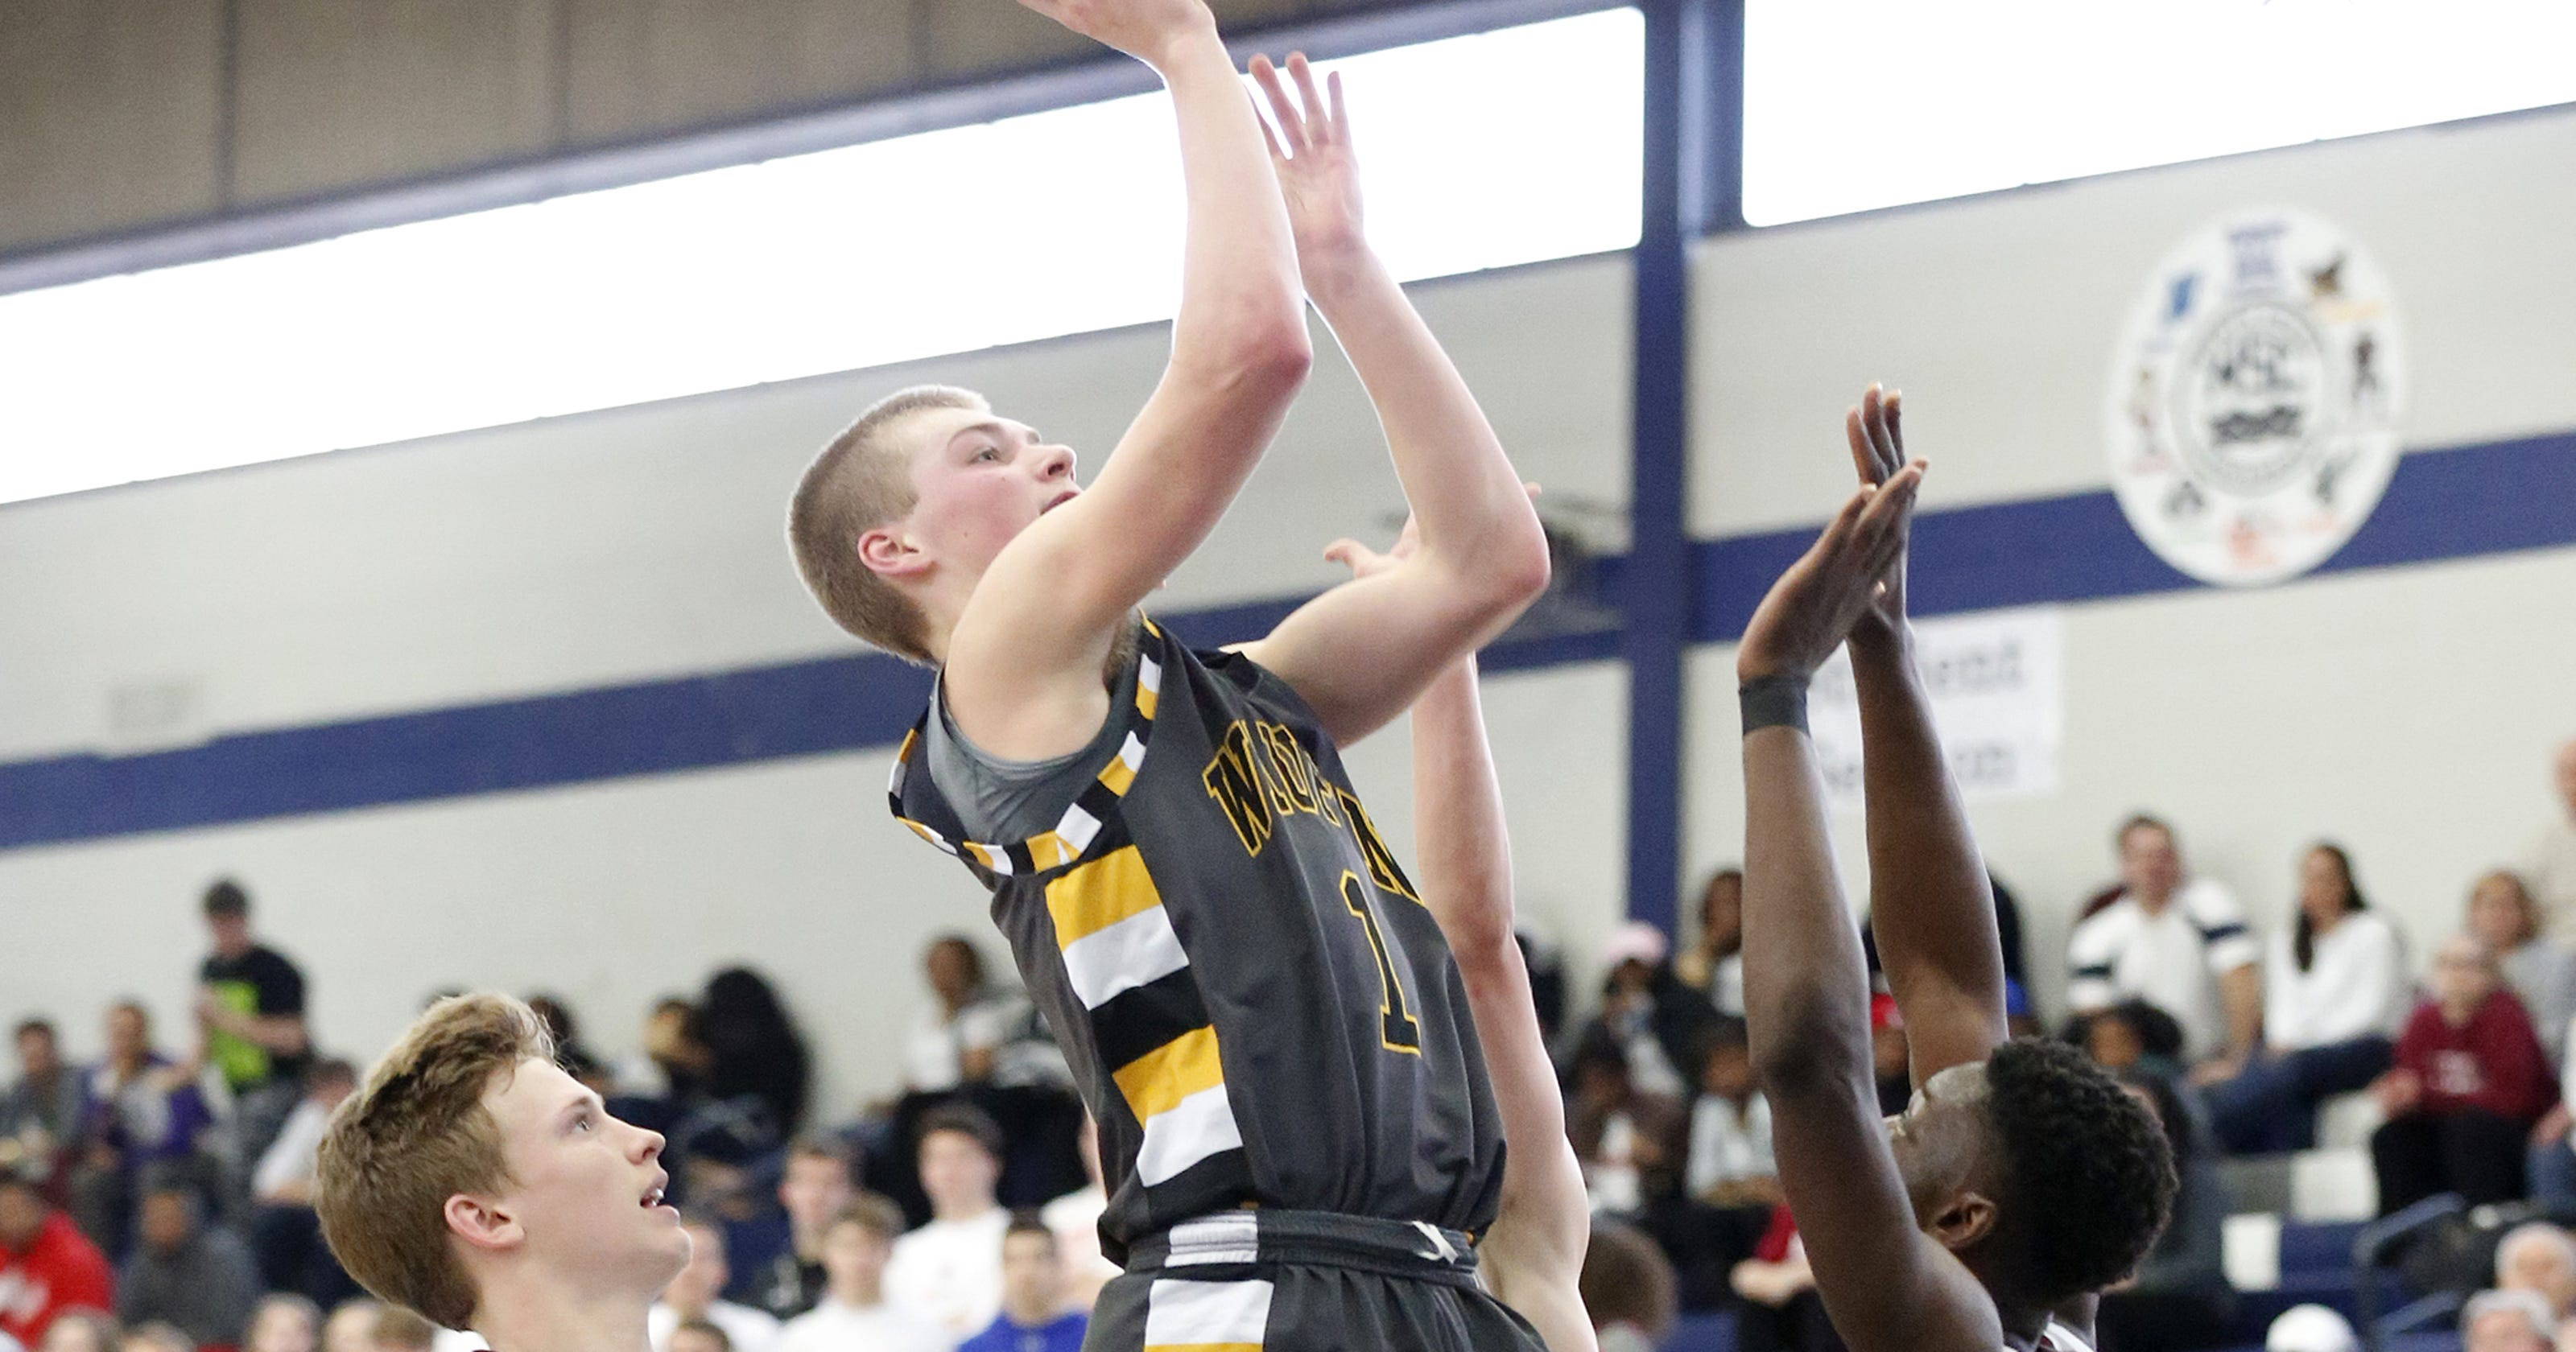 Wisconsin high school basketball: 8 hoops stars aiming for